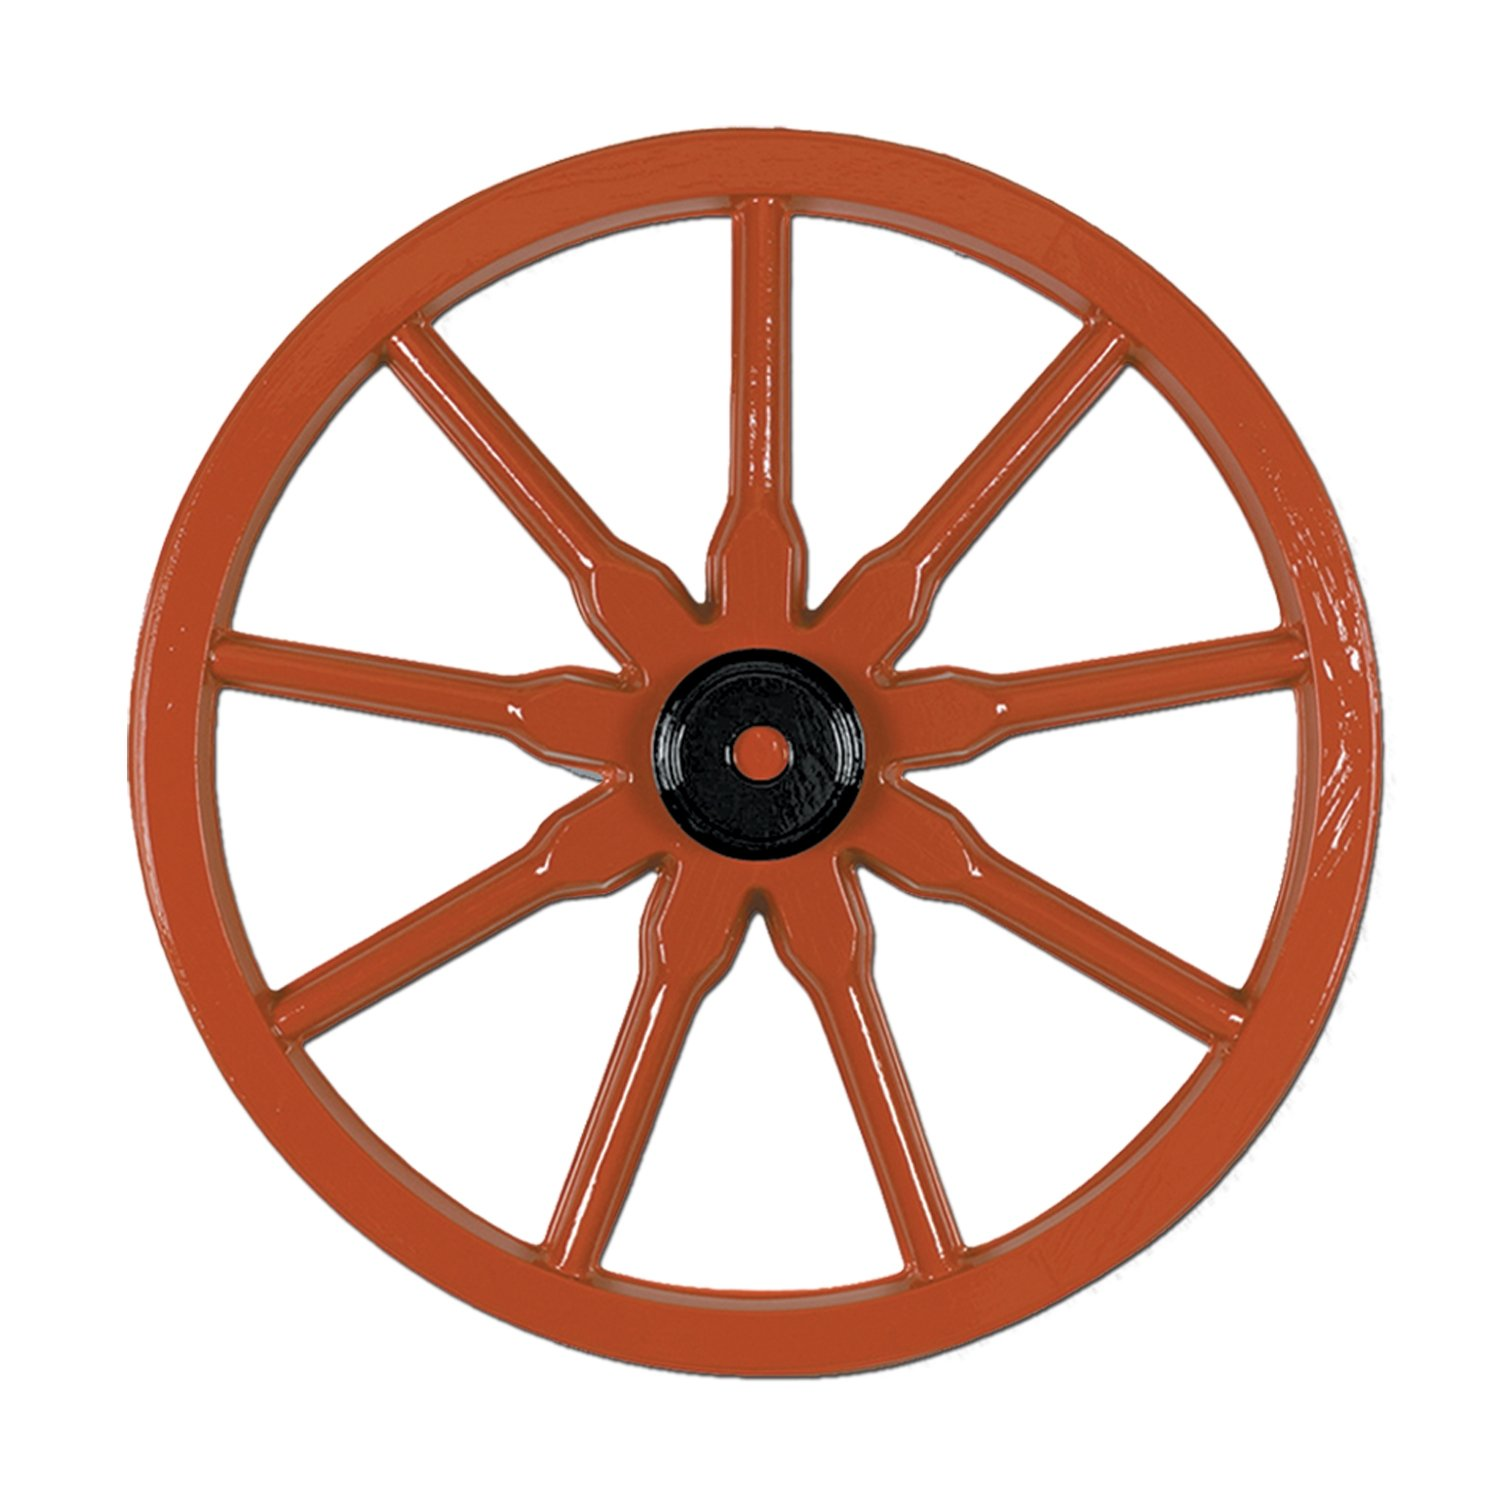 Beistle 55570 24-Pack Plastic Wagon Wheel, 23-Inch by Beistle